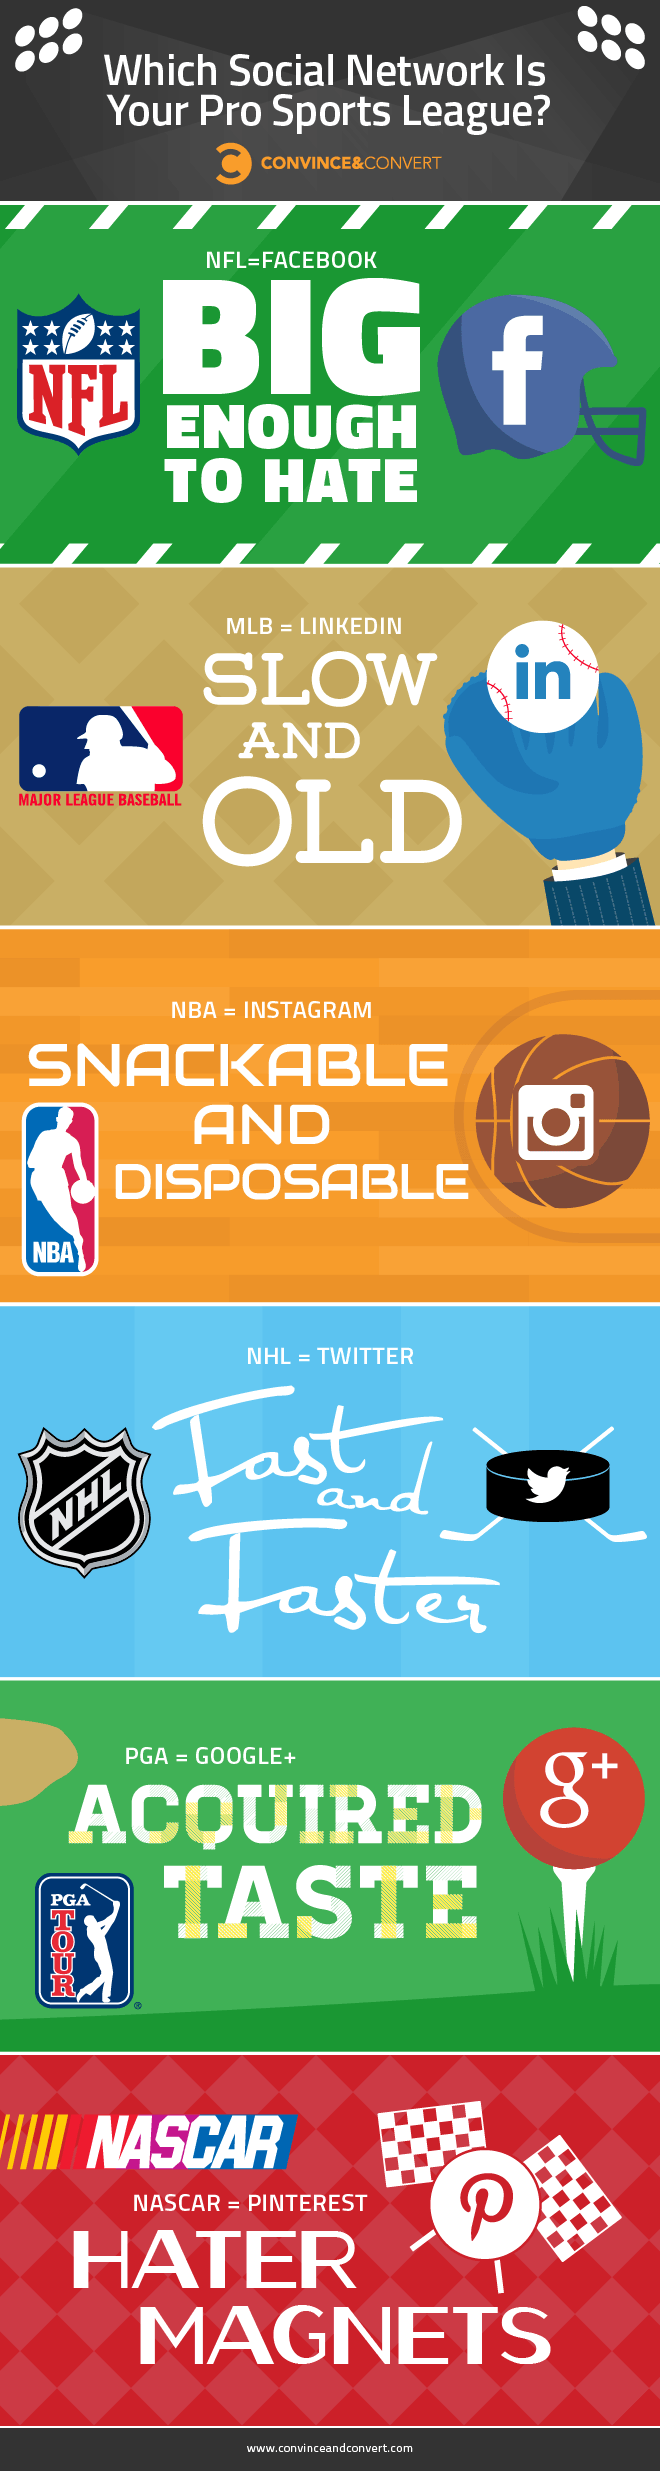 Which-Social-Network-is-Your-Pro-Sports-League_Infographic_001-01